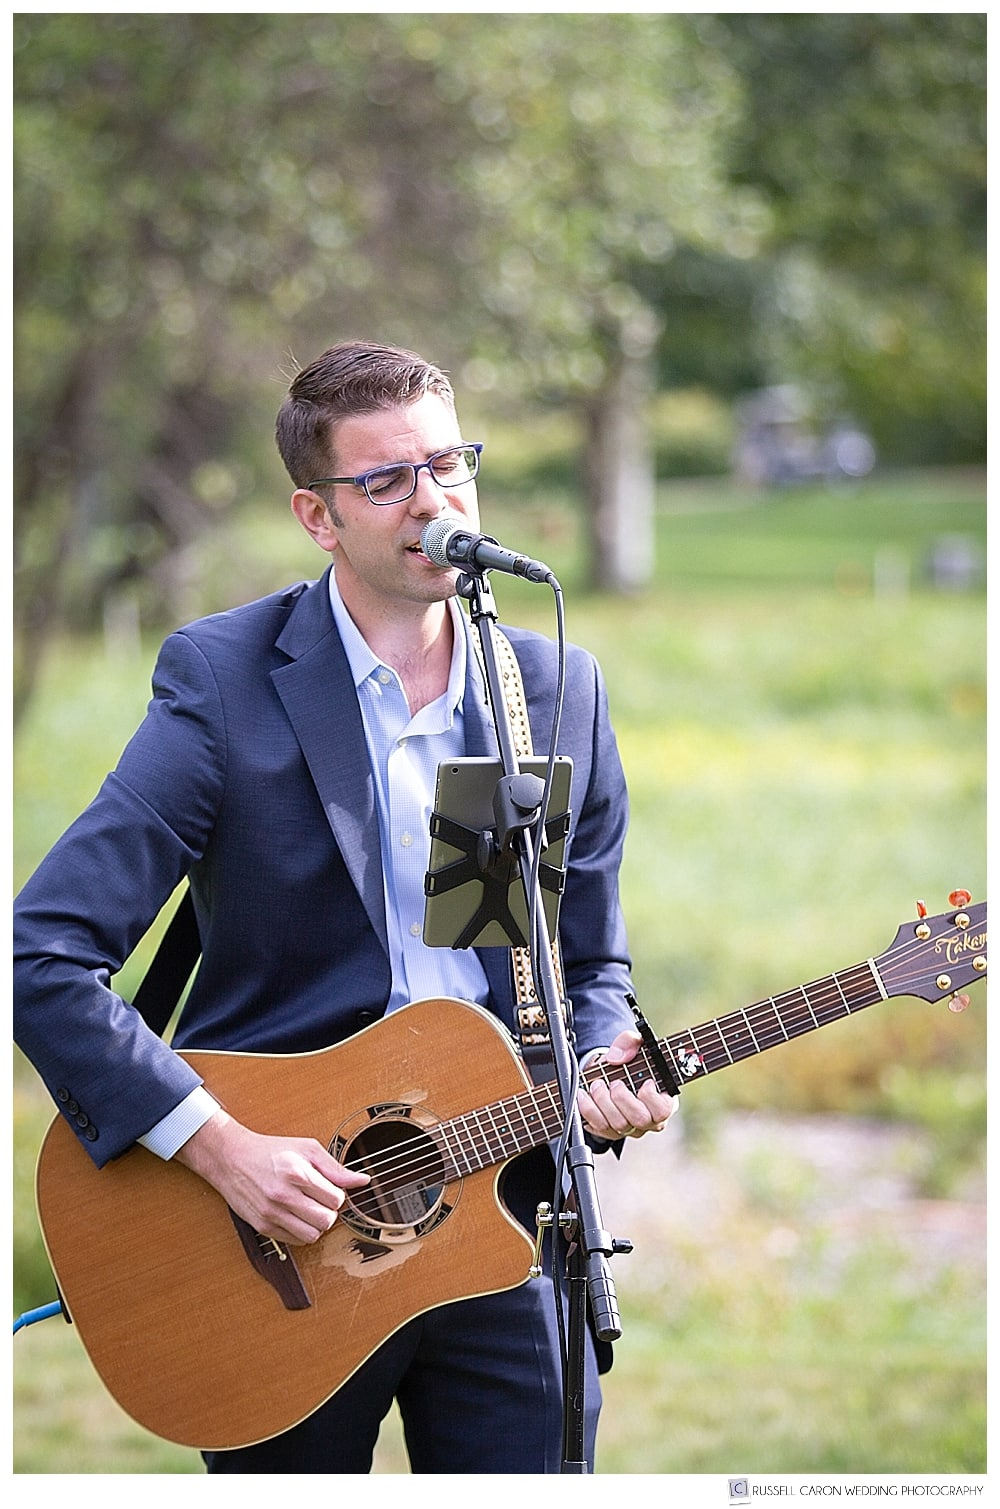 AJ Edwards singing at an outdoor wedding ceremony at the Thompson House Eatery in Jackson, NH